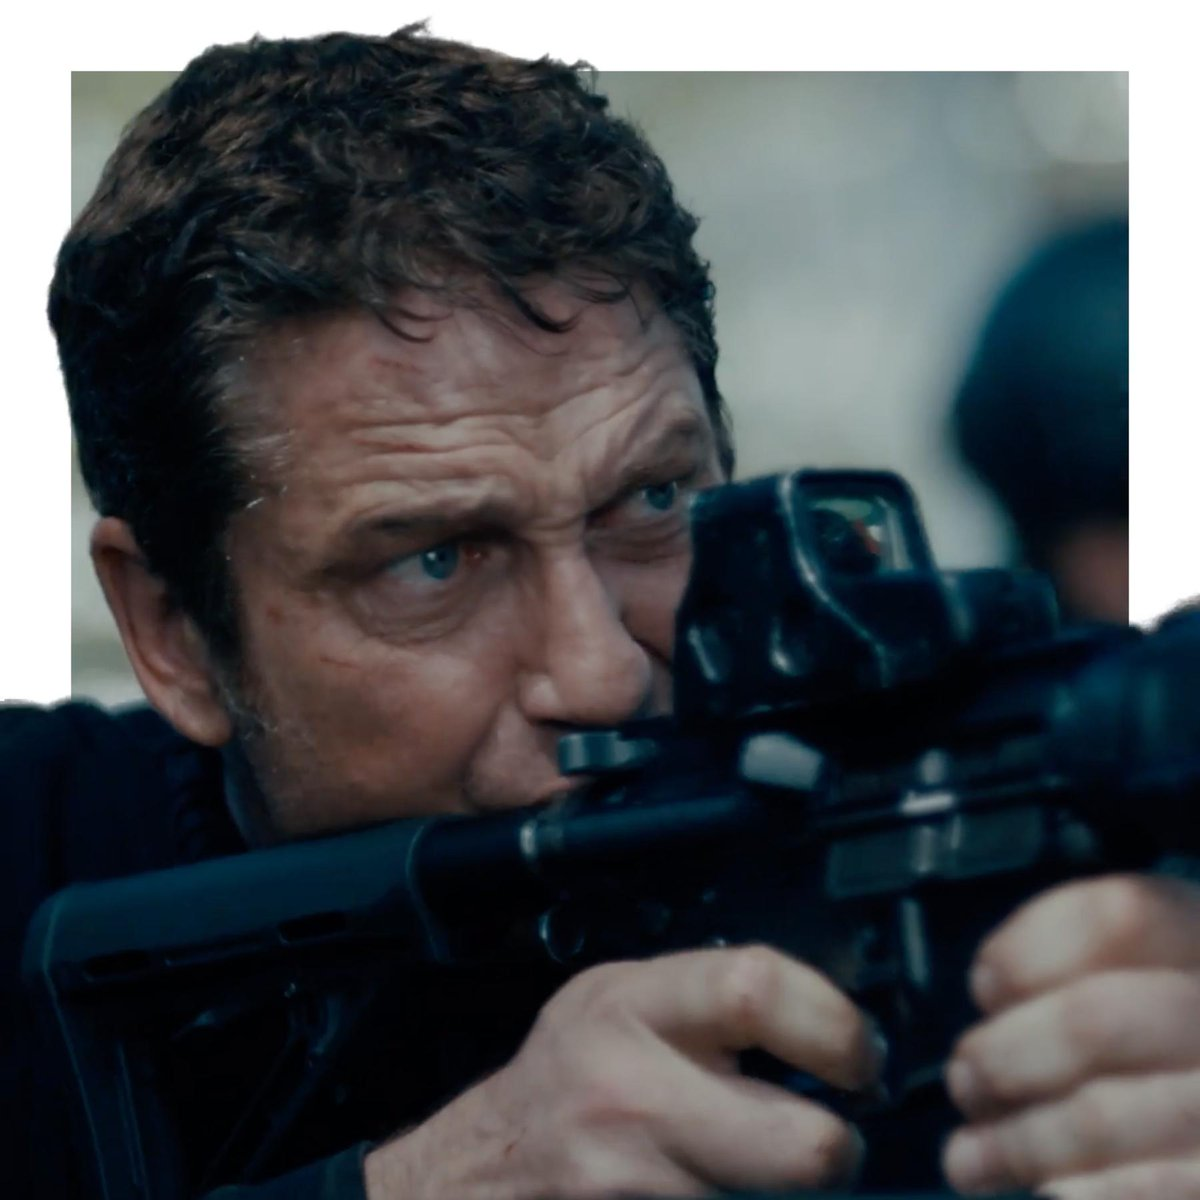 """Gerard Butler is the ultimate action hero."" Find out why everyone can't stop talking about #AngelHasFallen. NOW PLAYING: https://t.co/y78VgxTuDd https://t.co/58NPoXVHKa"